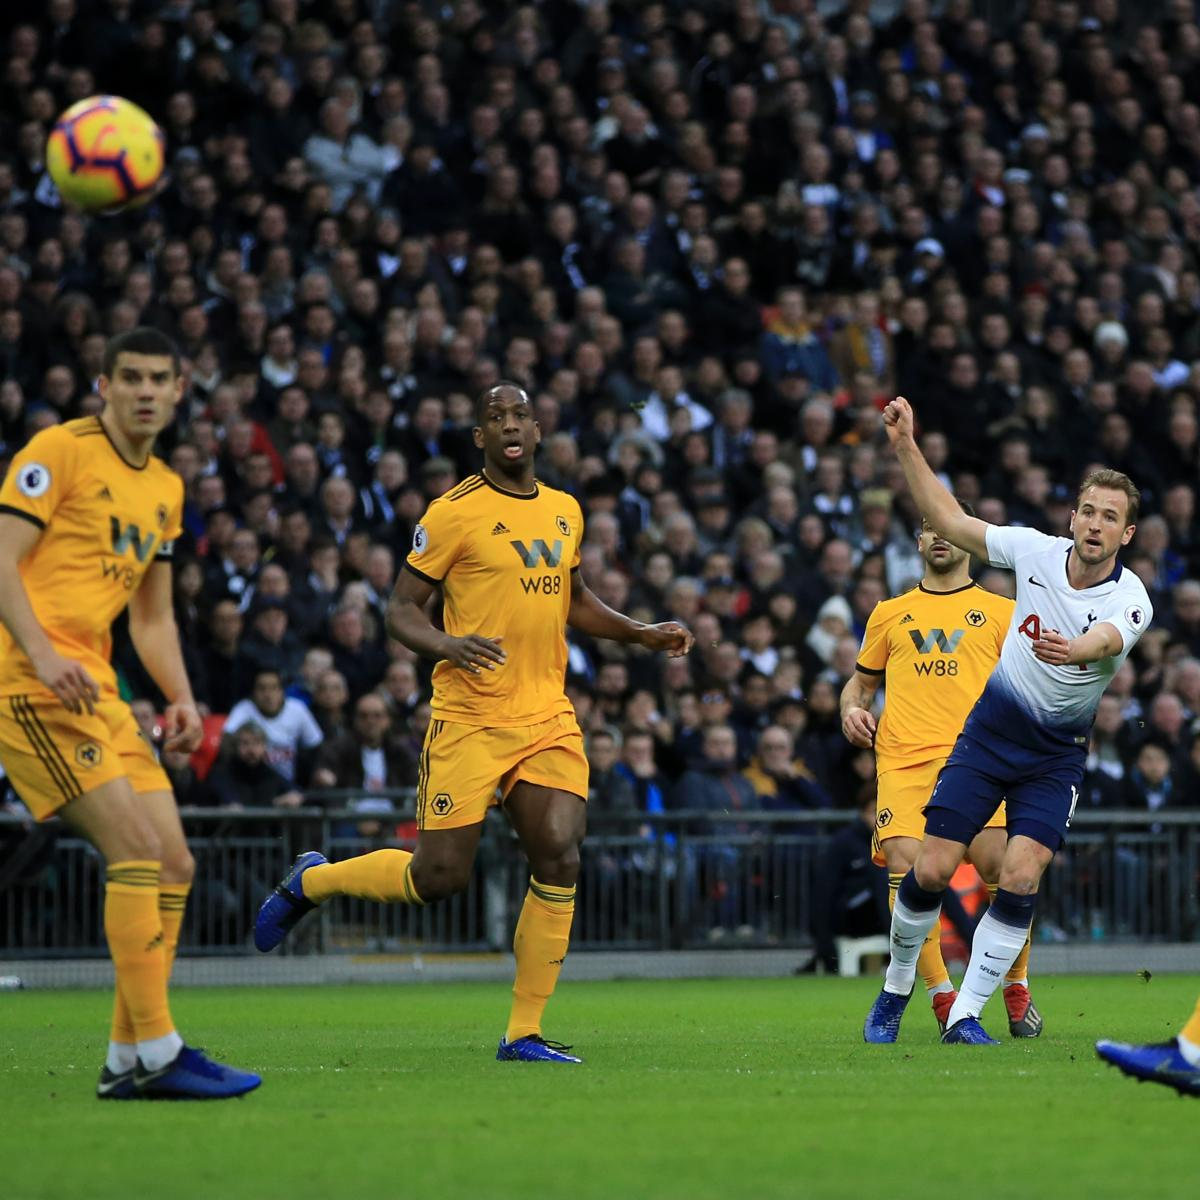 Tottenham 3 Fulham 1 Match Highlights Harry Kane Scores: EPL Table: 2019 Standings After Saturday's Week 20 Results